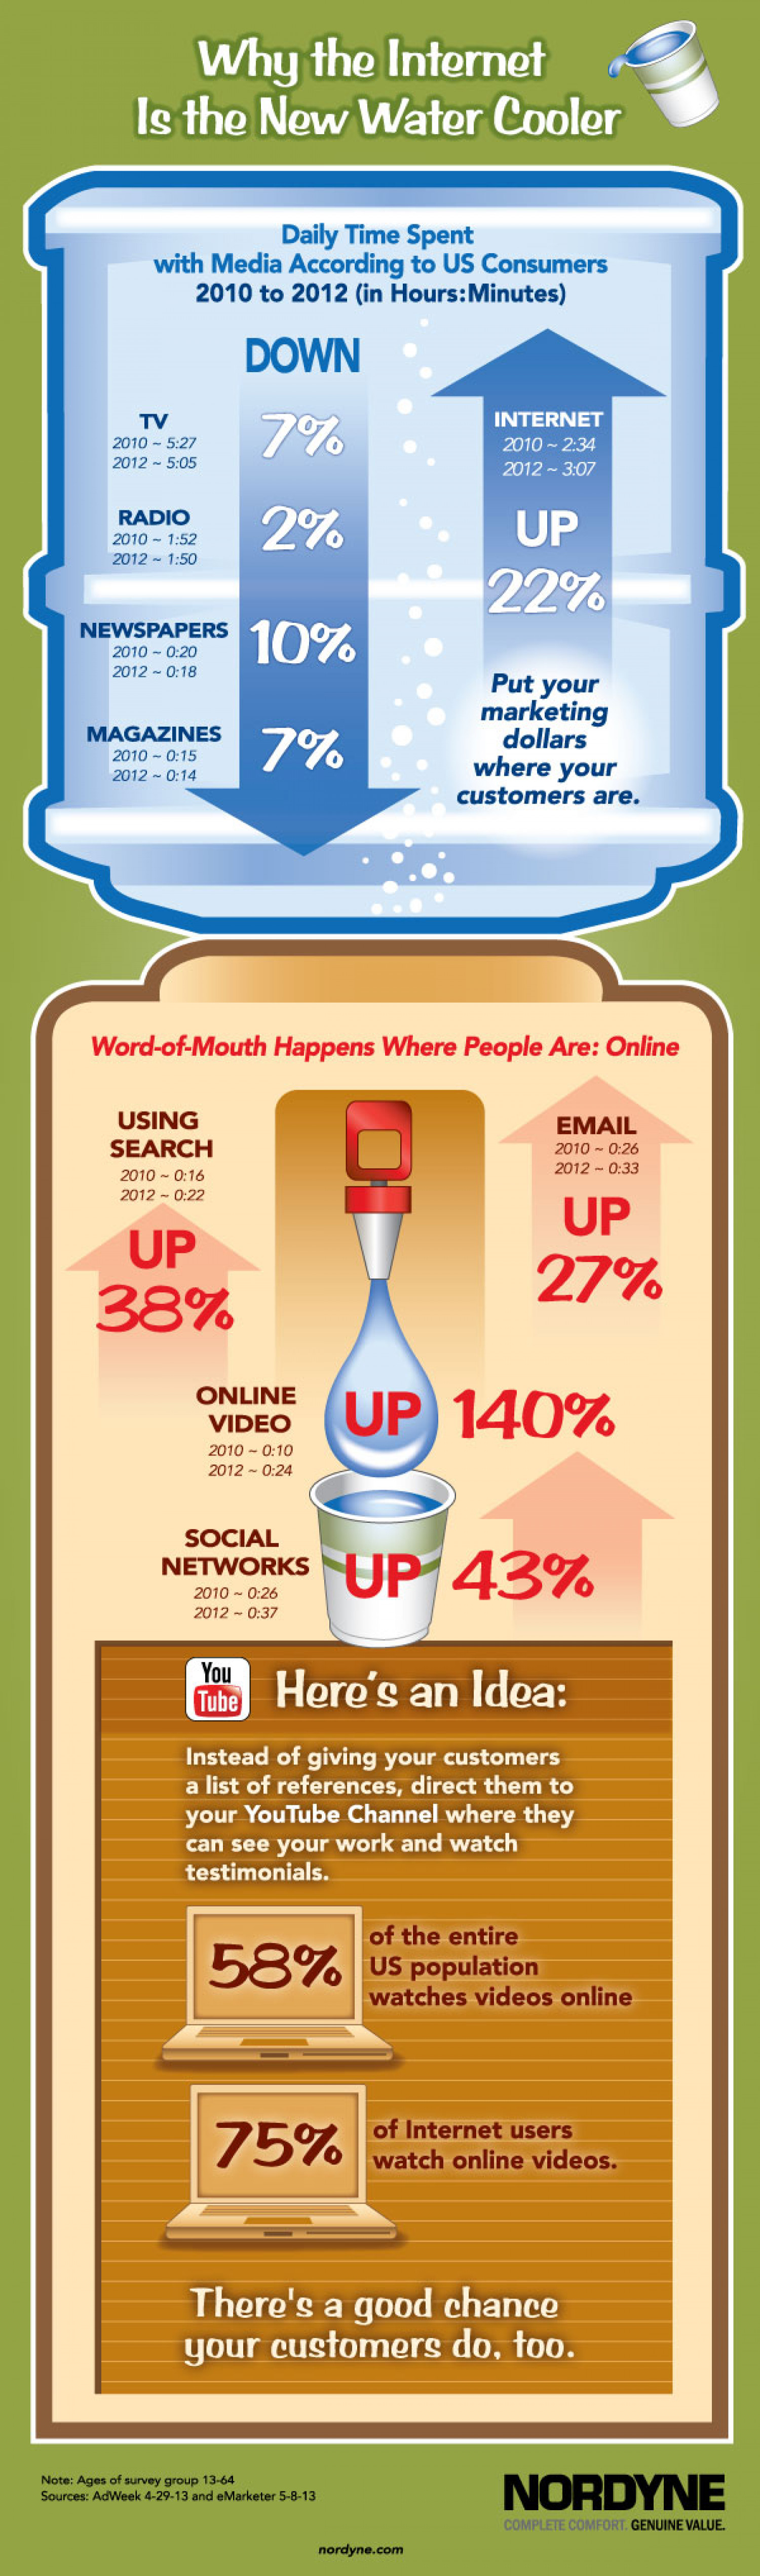 Why the Internet Is the New Water Cooler Infographic